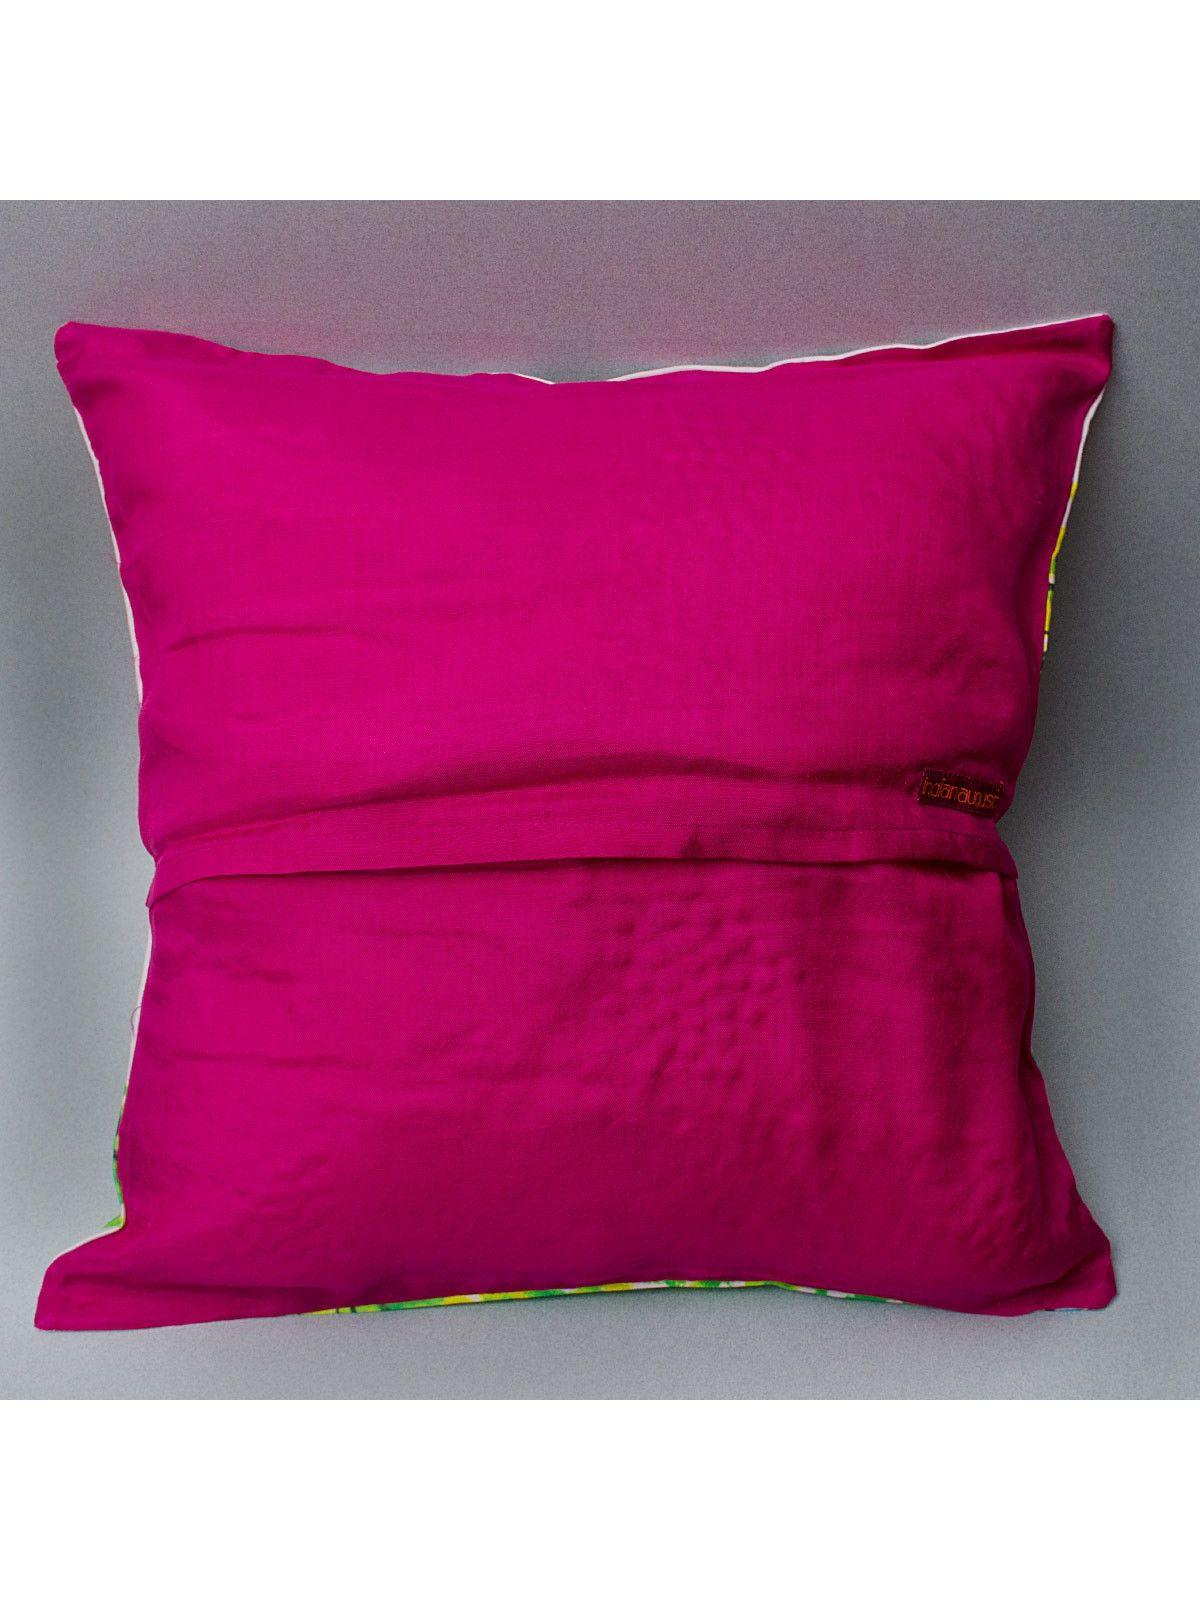 Digital Printed Cushion Cover - Multicolor 16 x 16 Inch